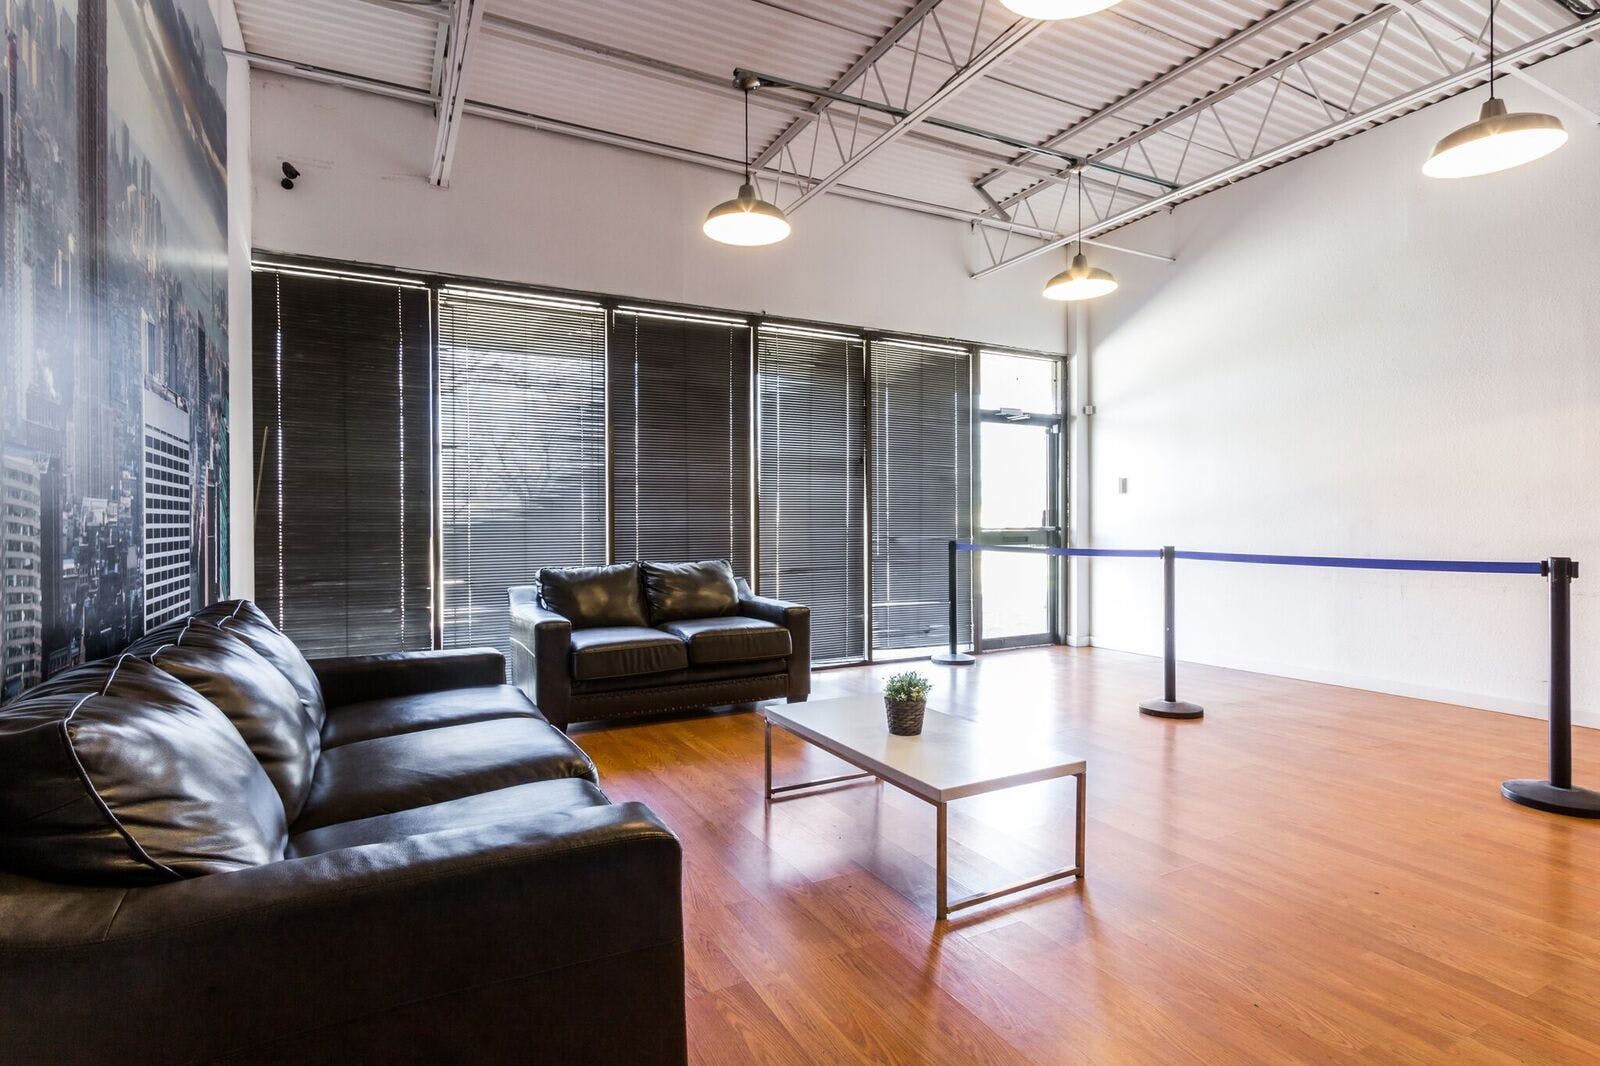 Event Space Venues Near Me Birthday Party Halls For Rent